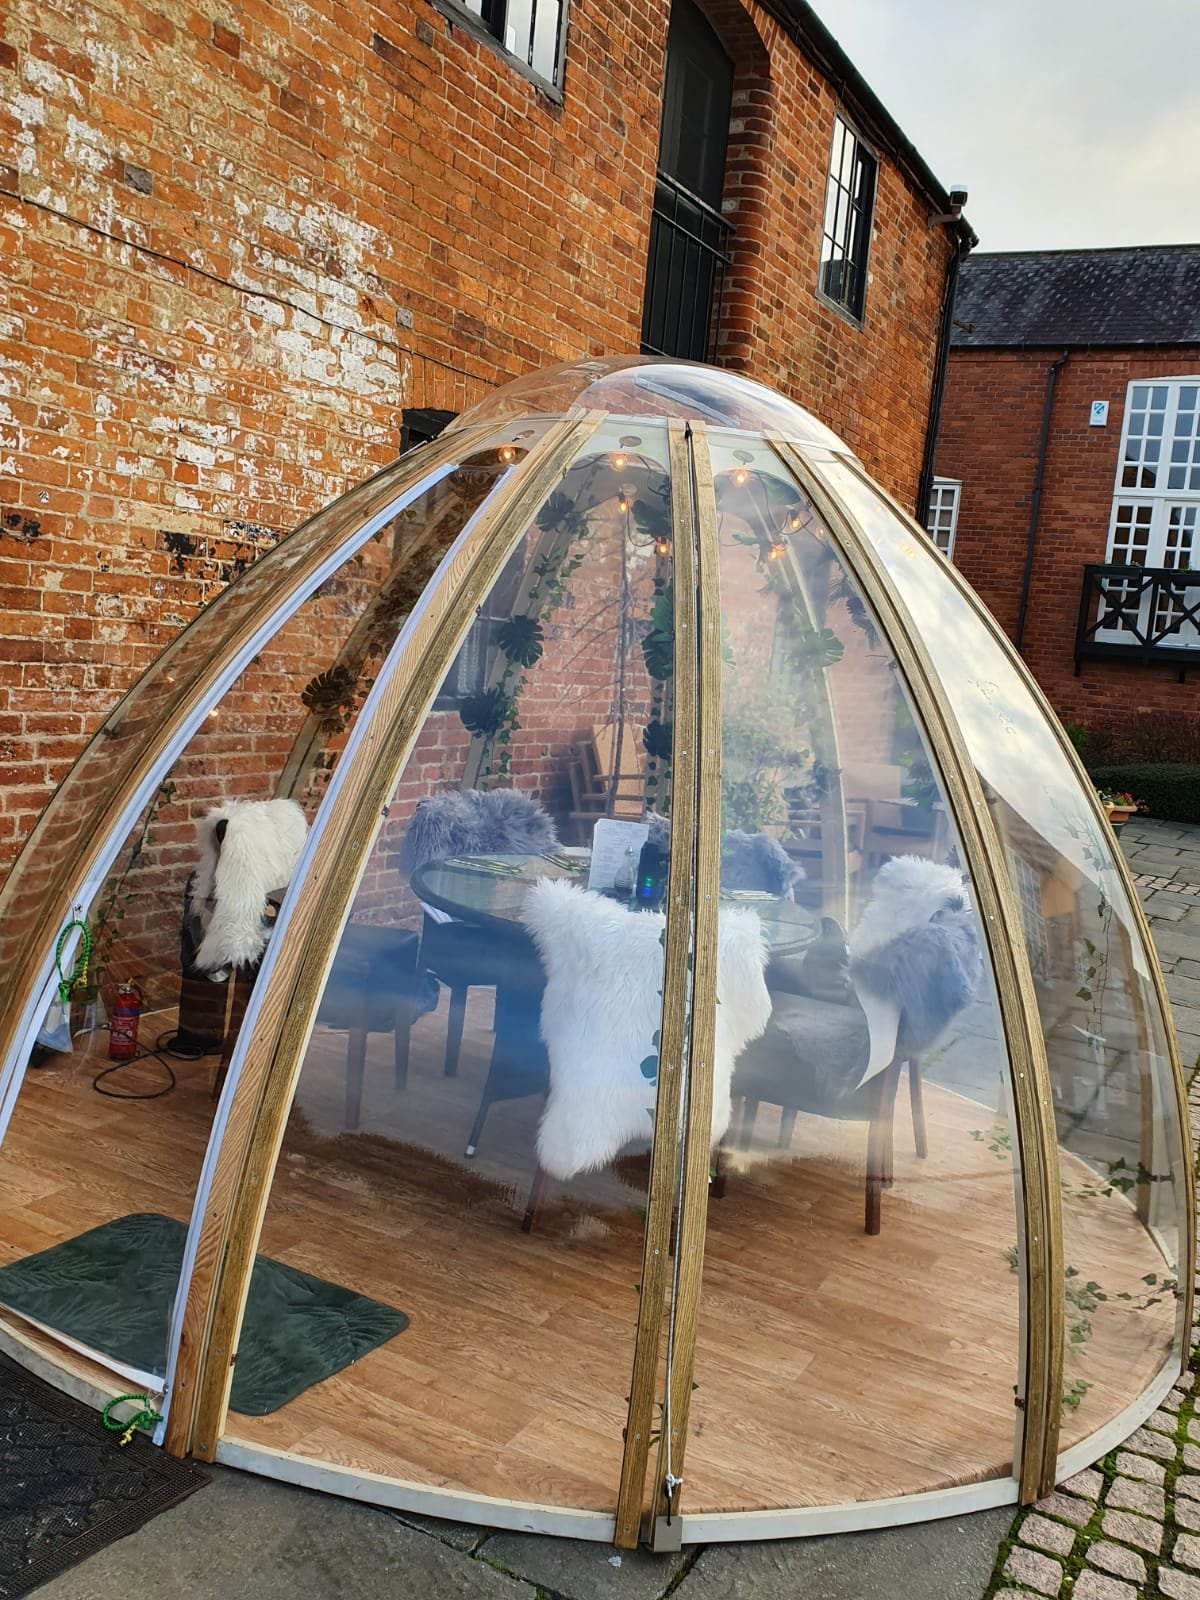 Dining in an Igloo. The Waterfront- Market Harbrough.